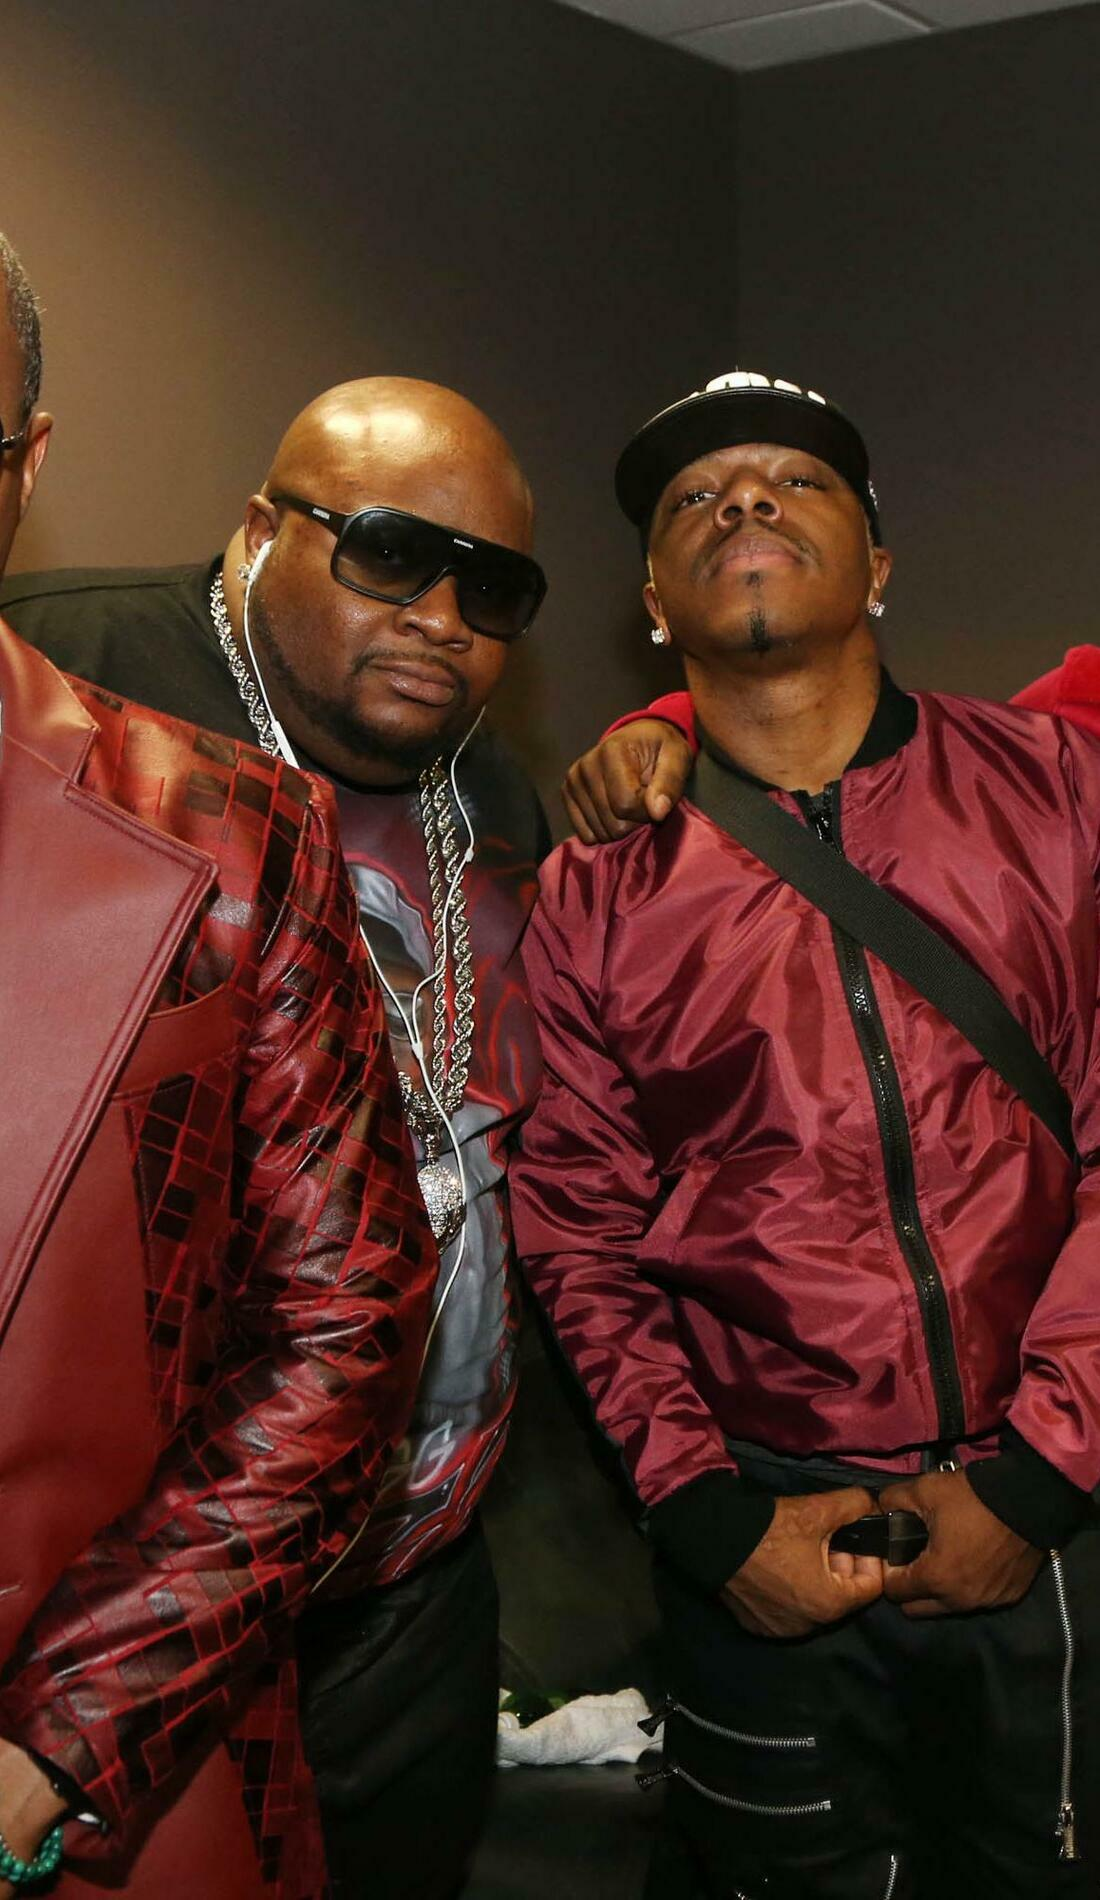 A Dru Hill live event